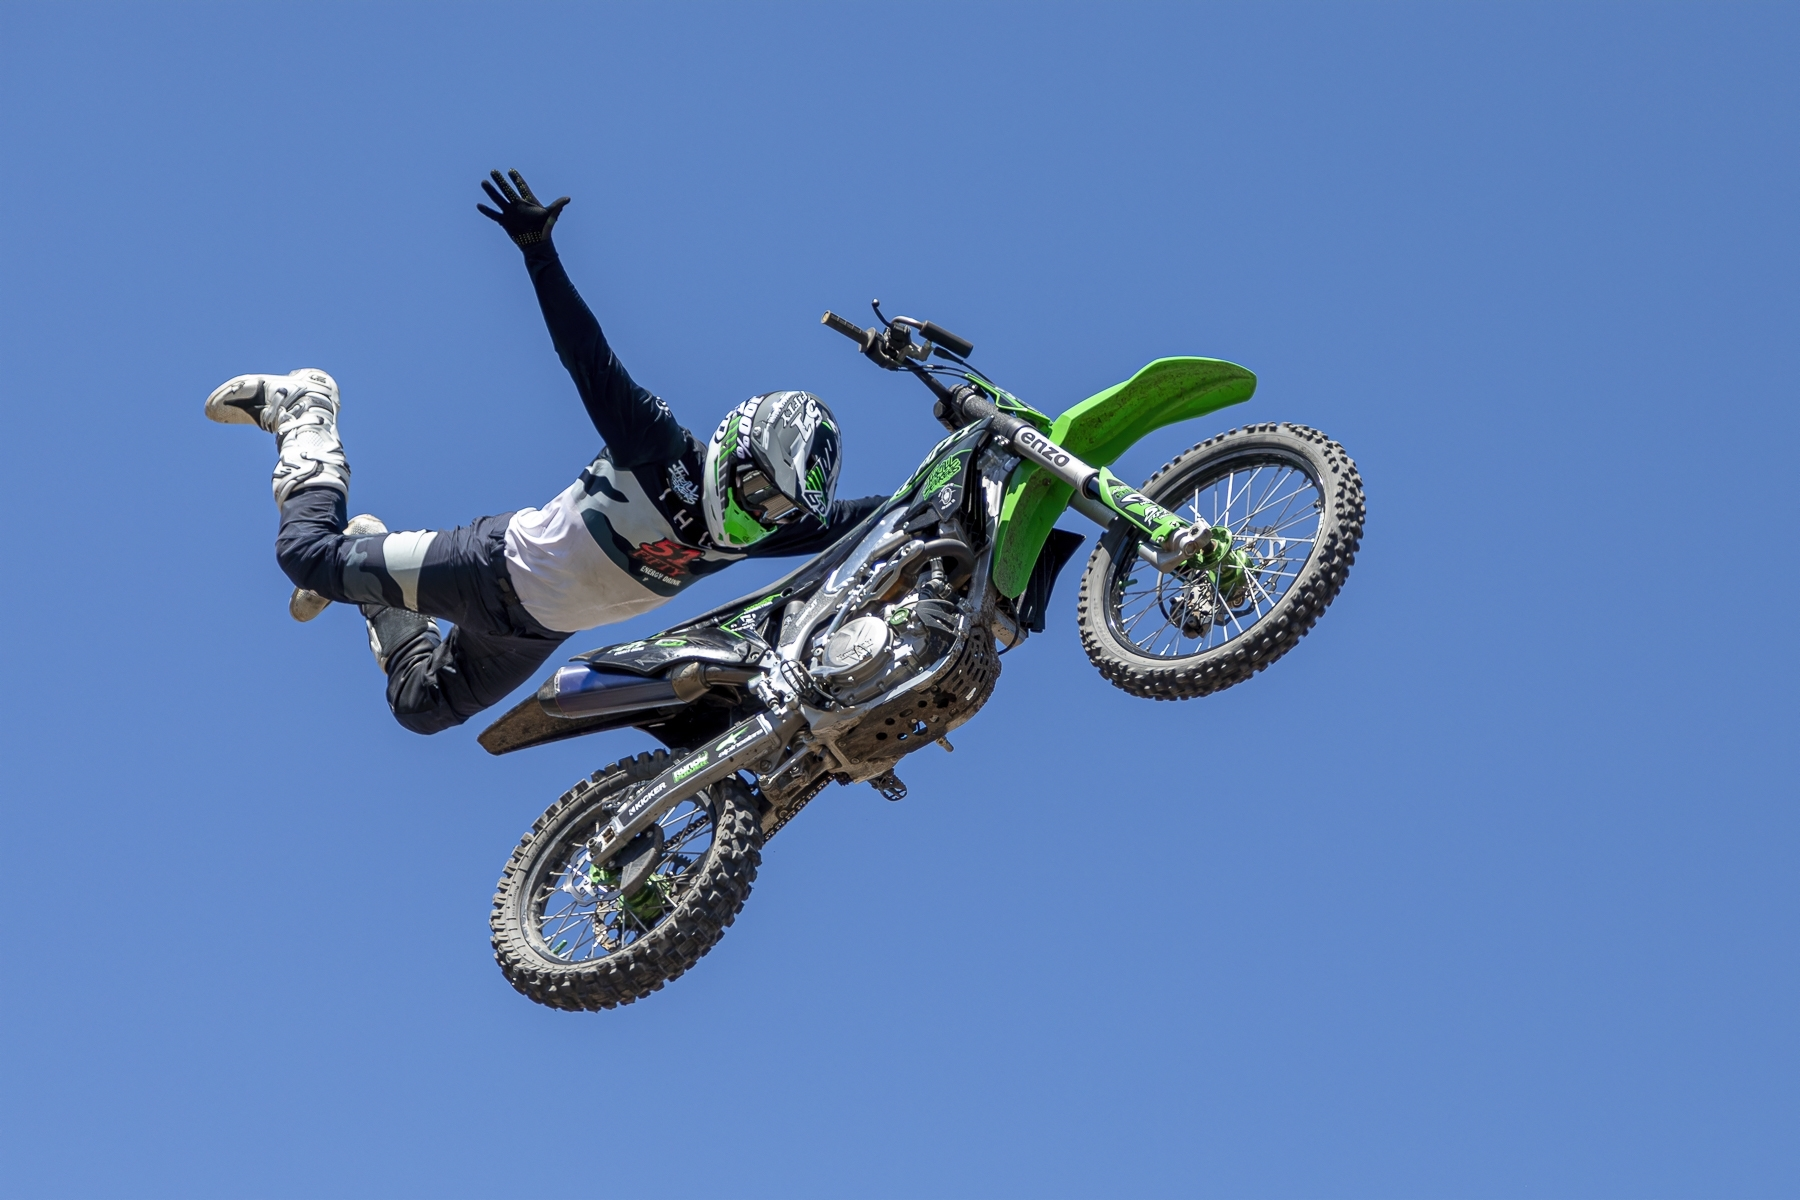 Freestyle-MX-rider-full-release-of-bike-65-feet-in-the-air-at-Alameda-County-Fair-2019-JM-1-Place-by-Steve-Goodall-RO